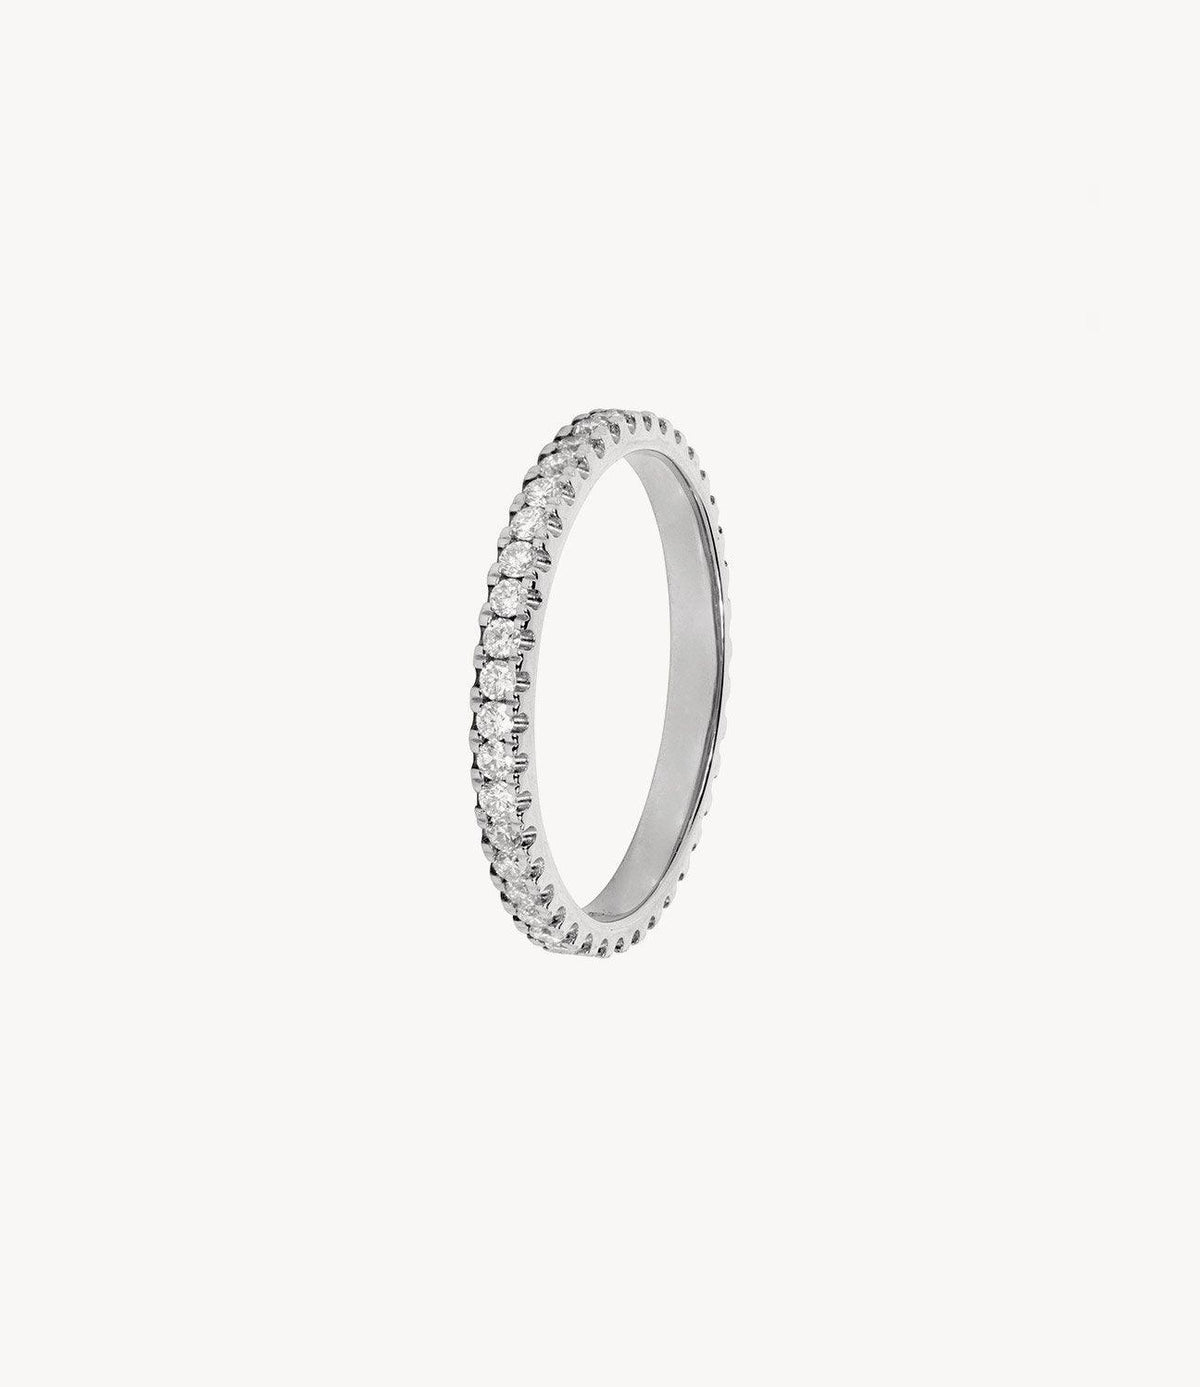 White Gold, Diamond Eternity Ring